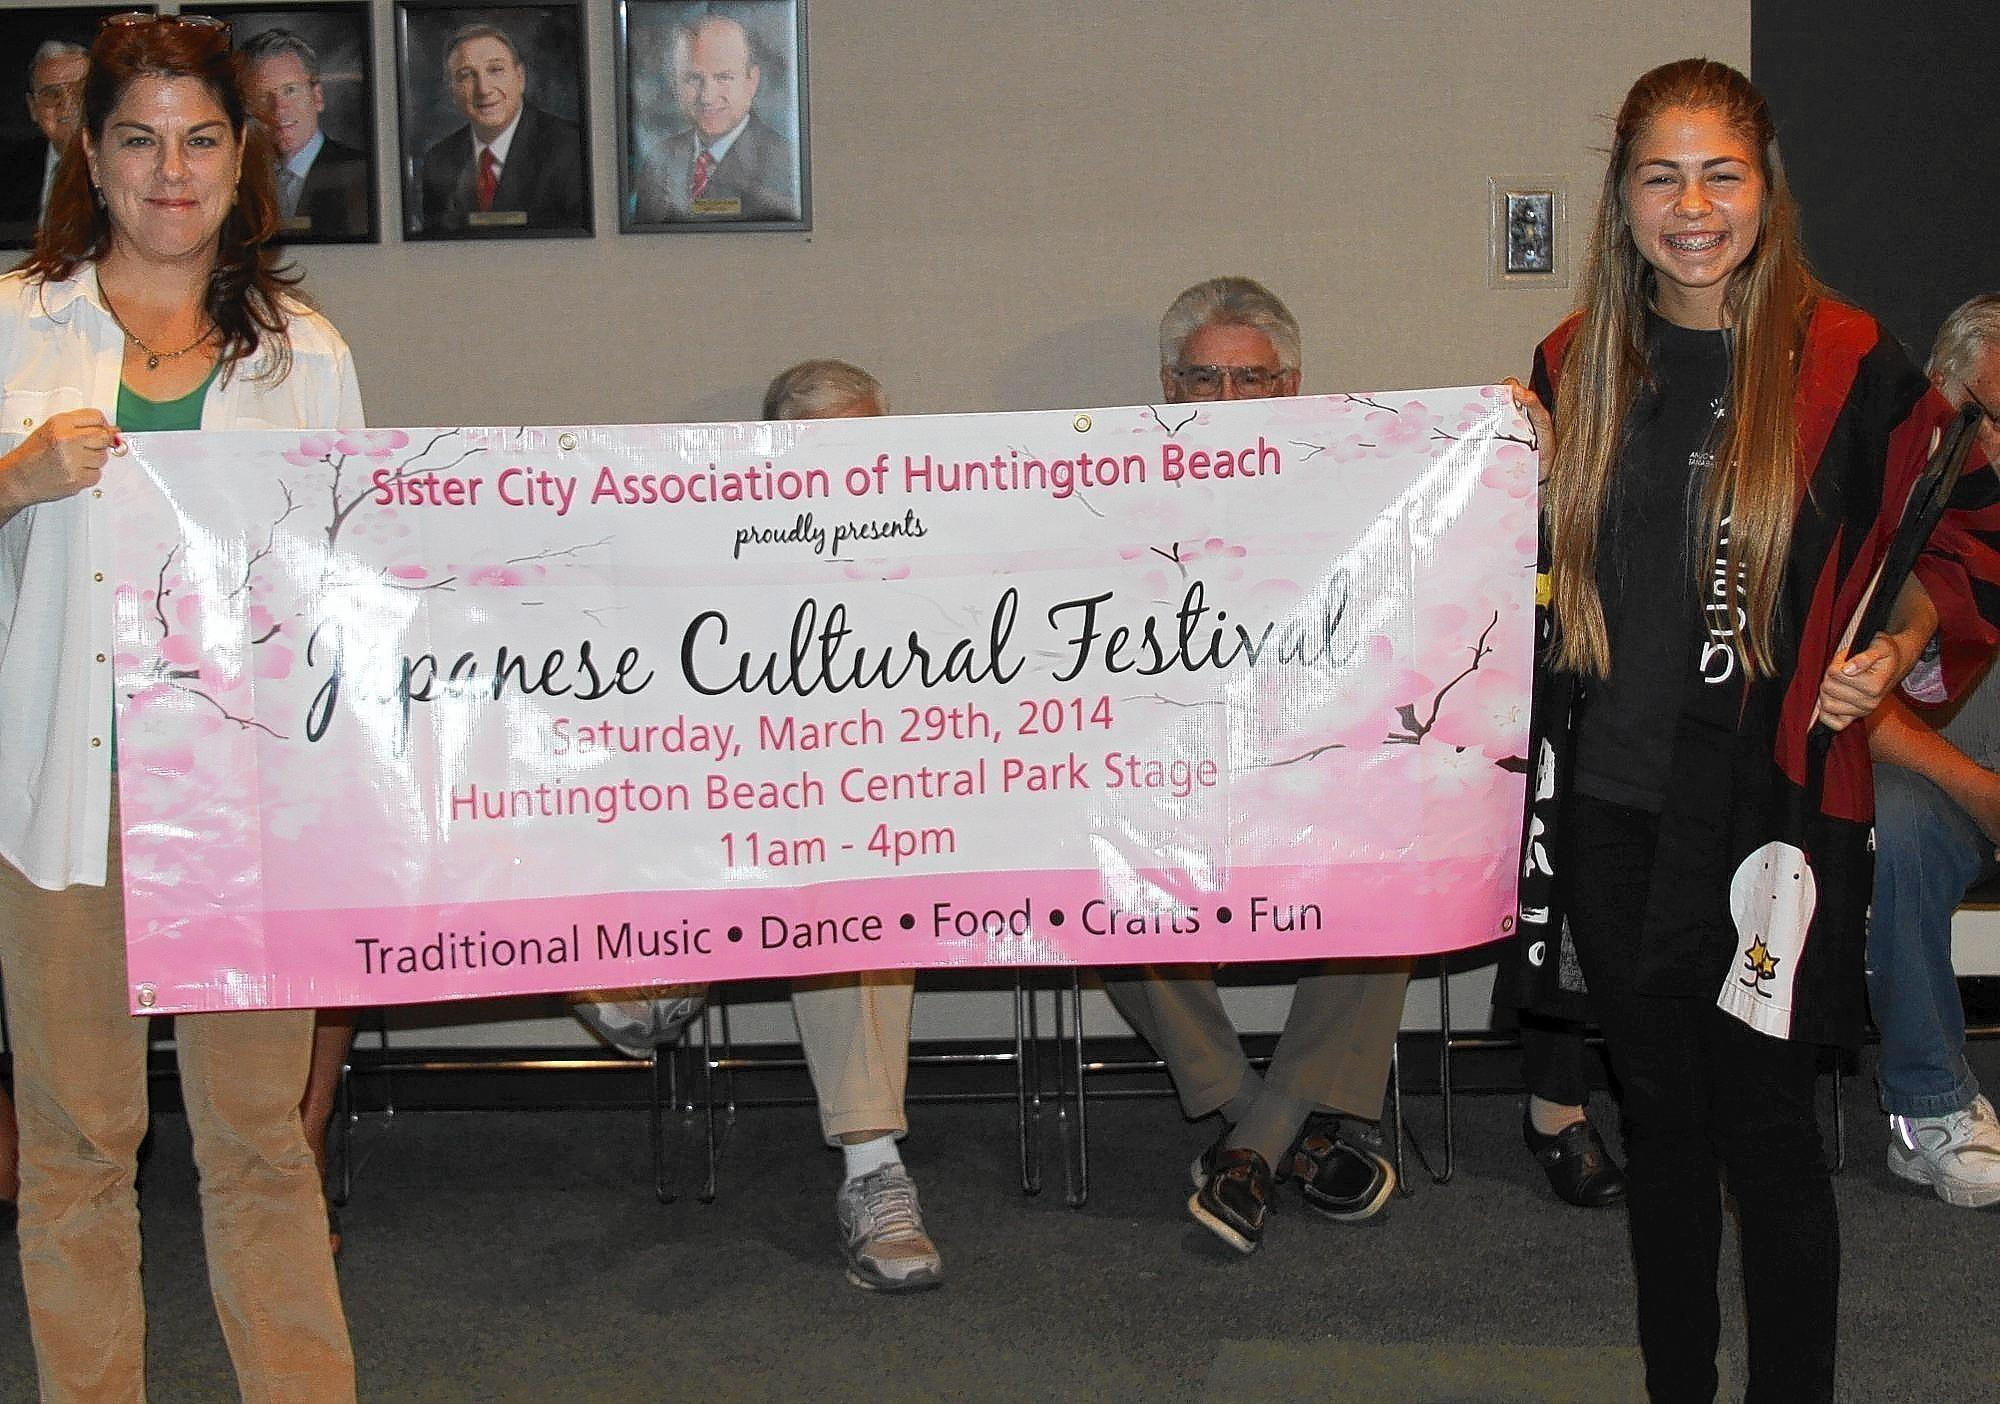 Natalie Anzivino, at right, is seen with her mom, Maureen, at a recent City Council meeting presenting a banner for the Festival she initiated.